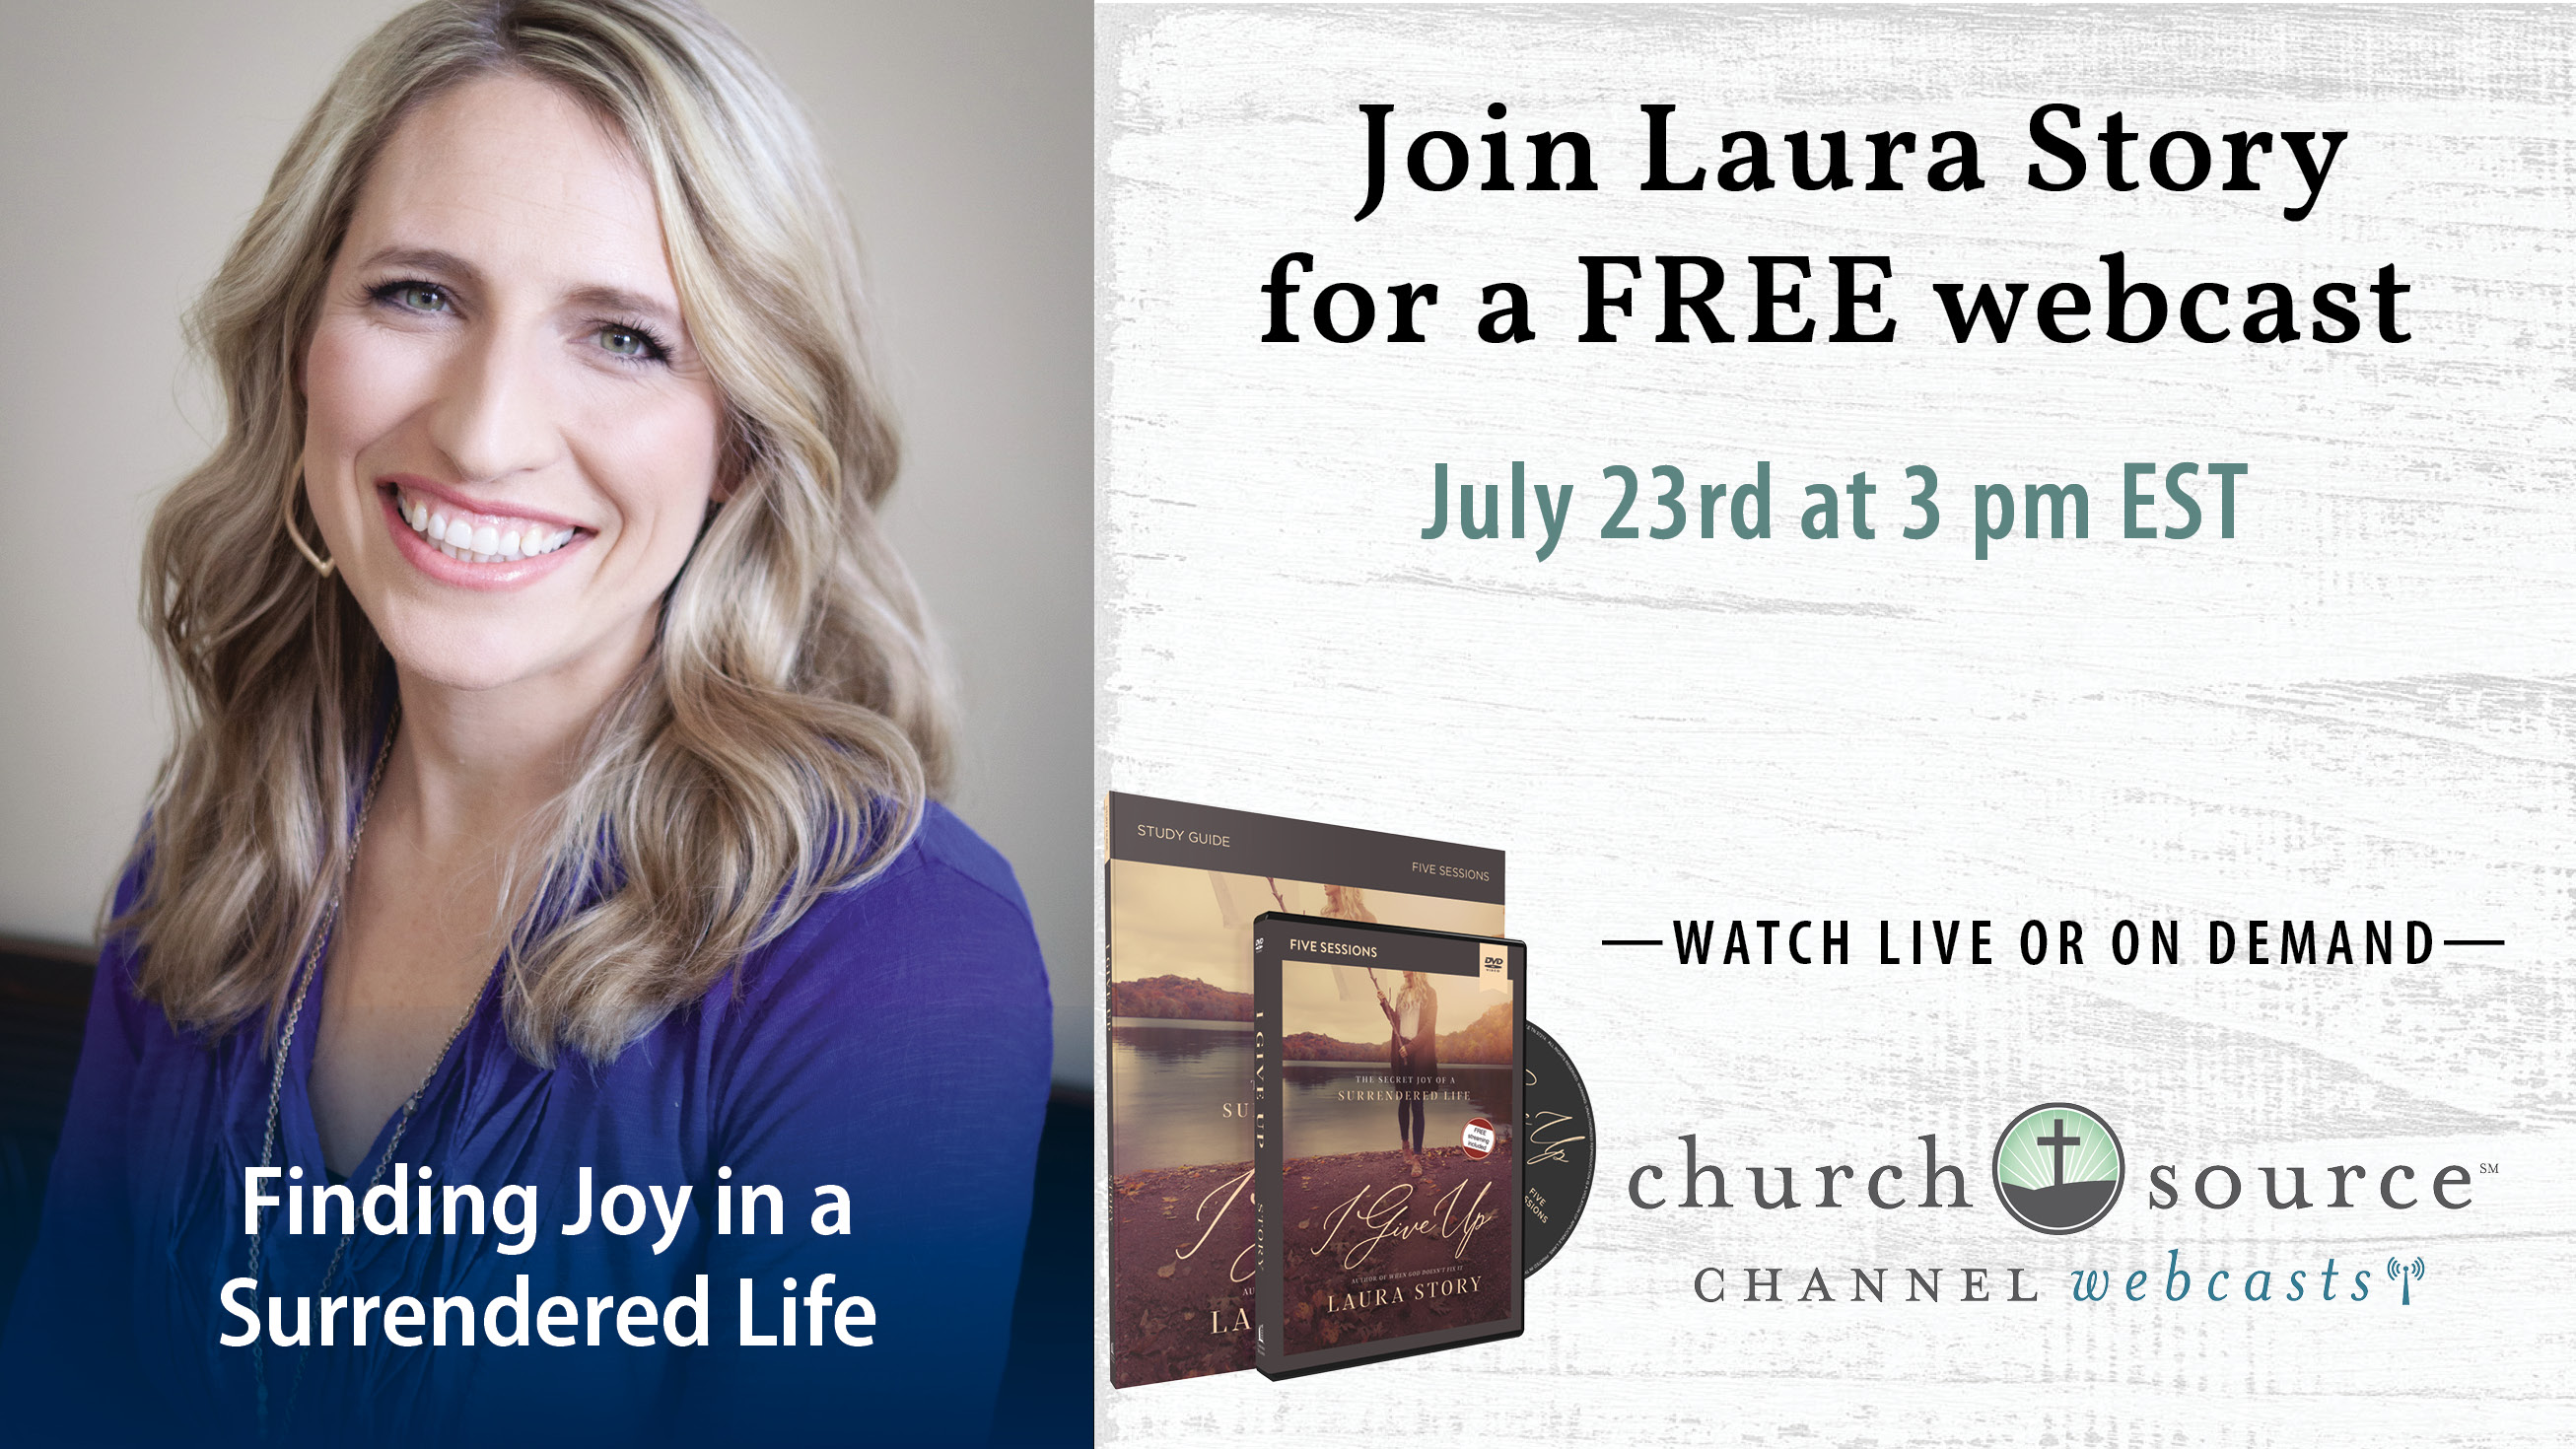 Finding Joy in a Surrendered Life - Webcast with Laura Story